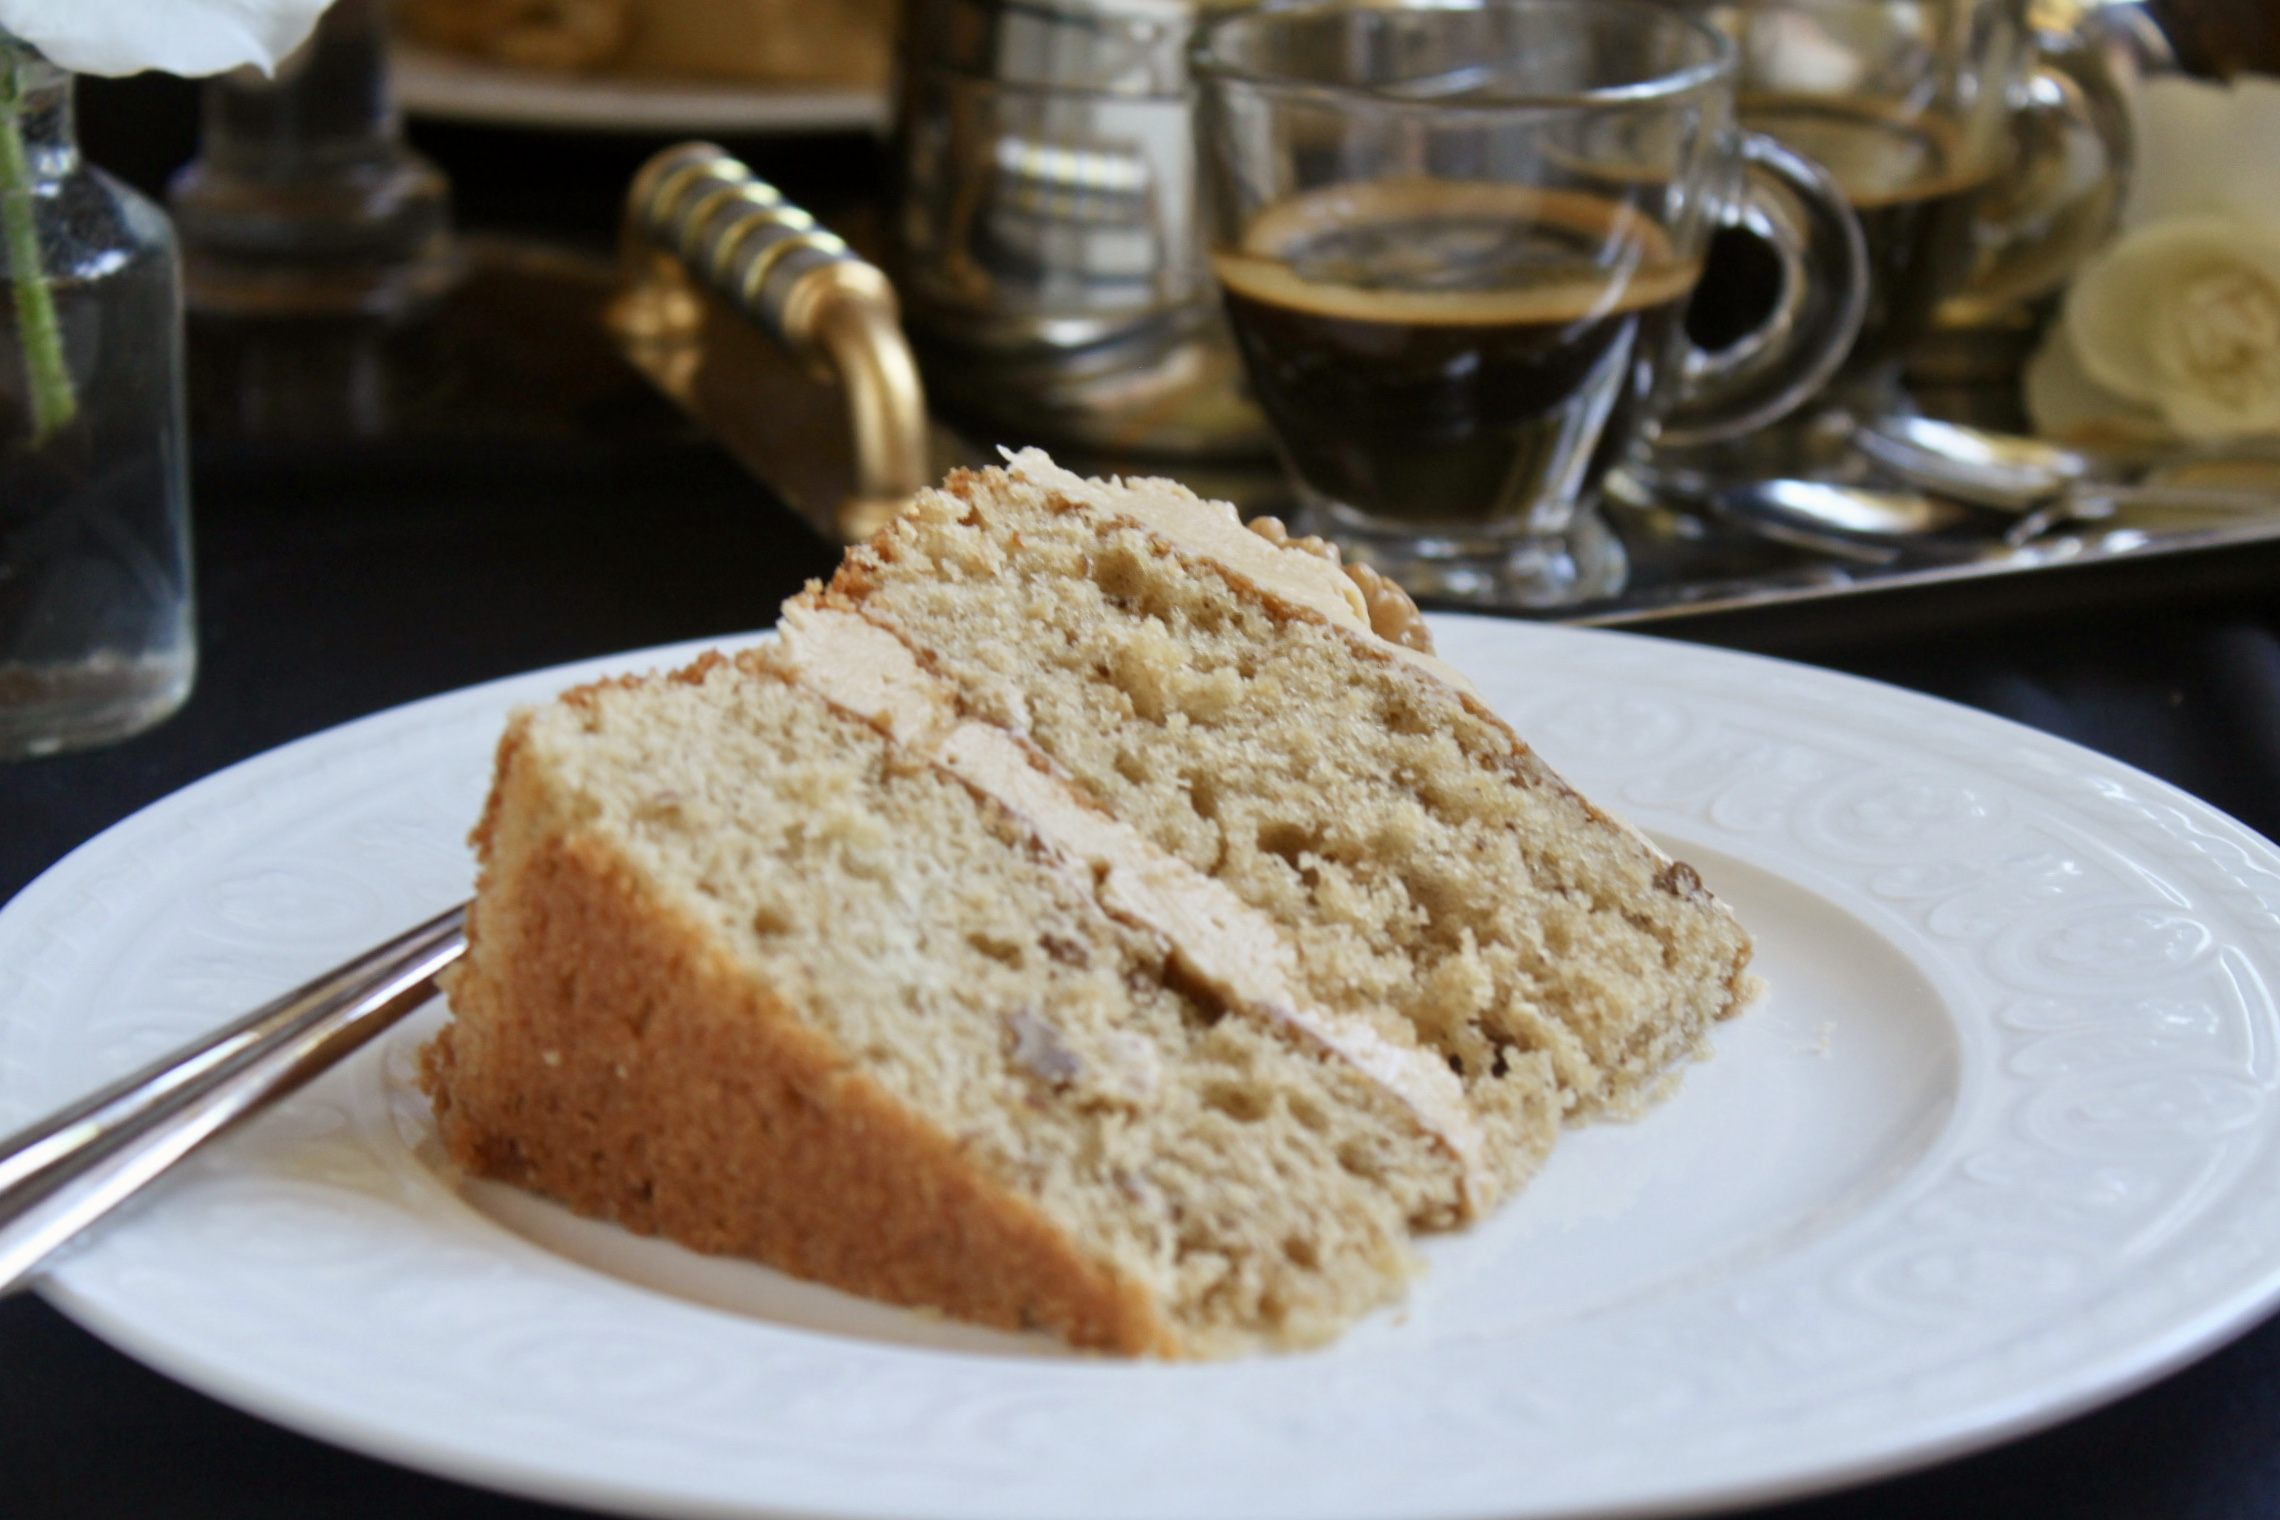 slice of coffee and walnut cake